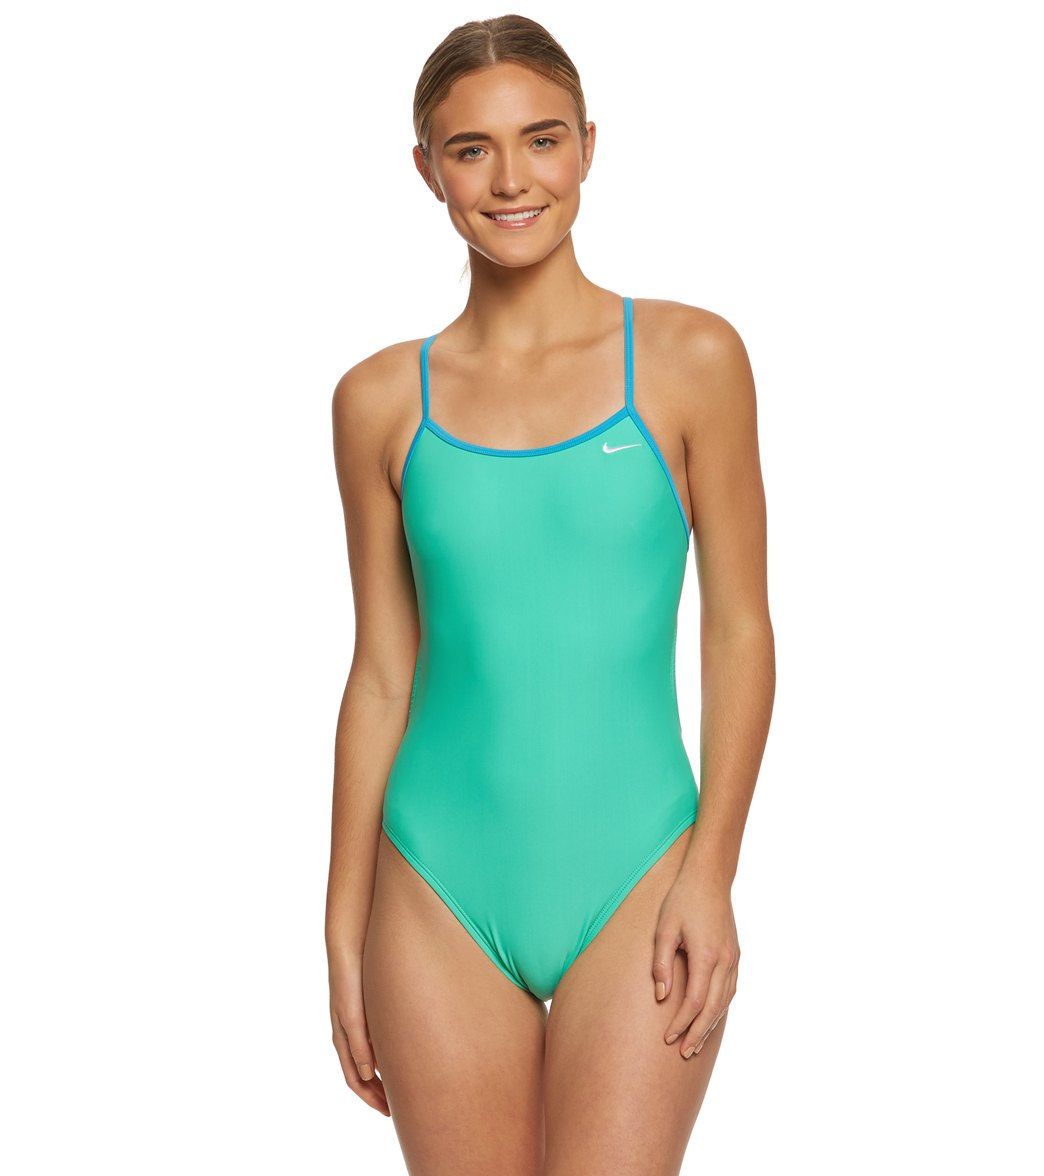 c9ad14e9a4e76 Nike Women's Solid Crossback One Piece Swimsuit at SwimOutlet.com - Free  Shipping